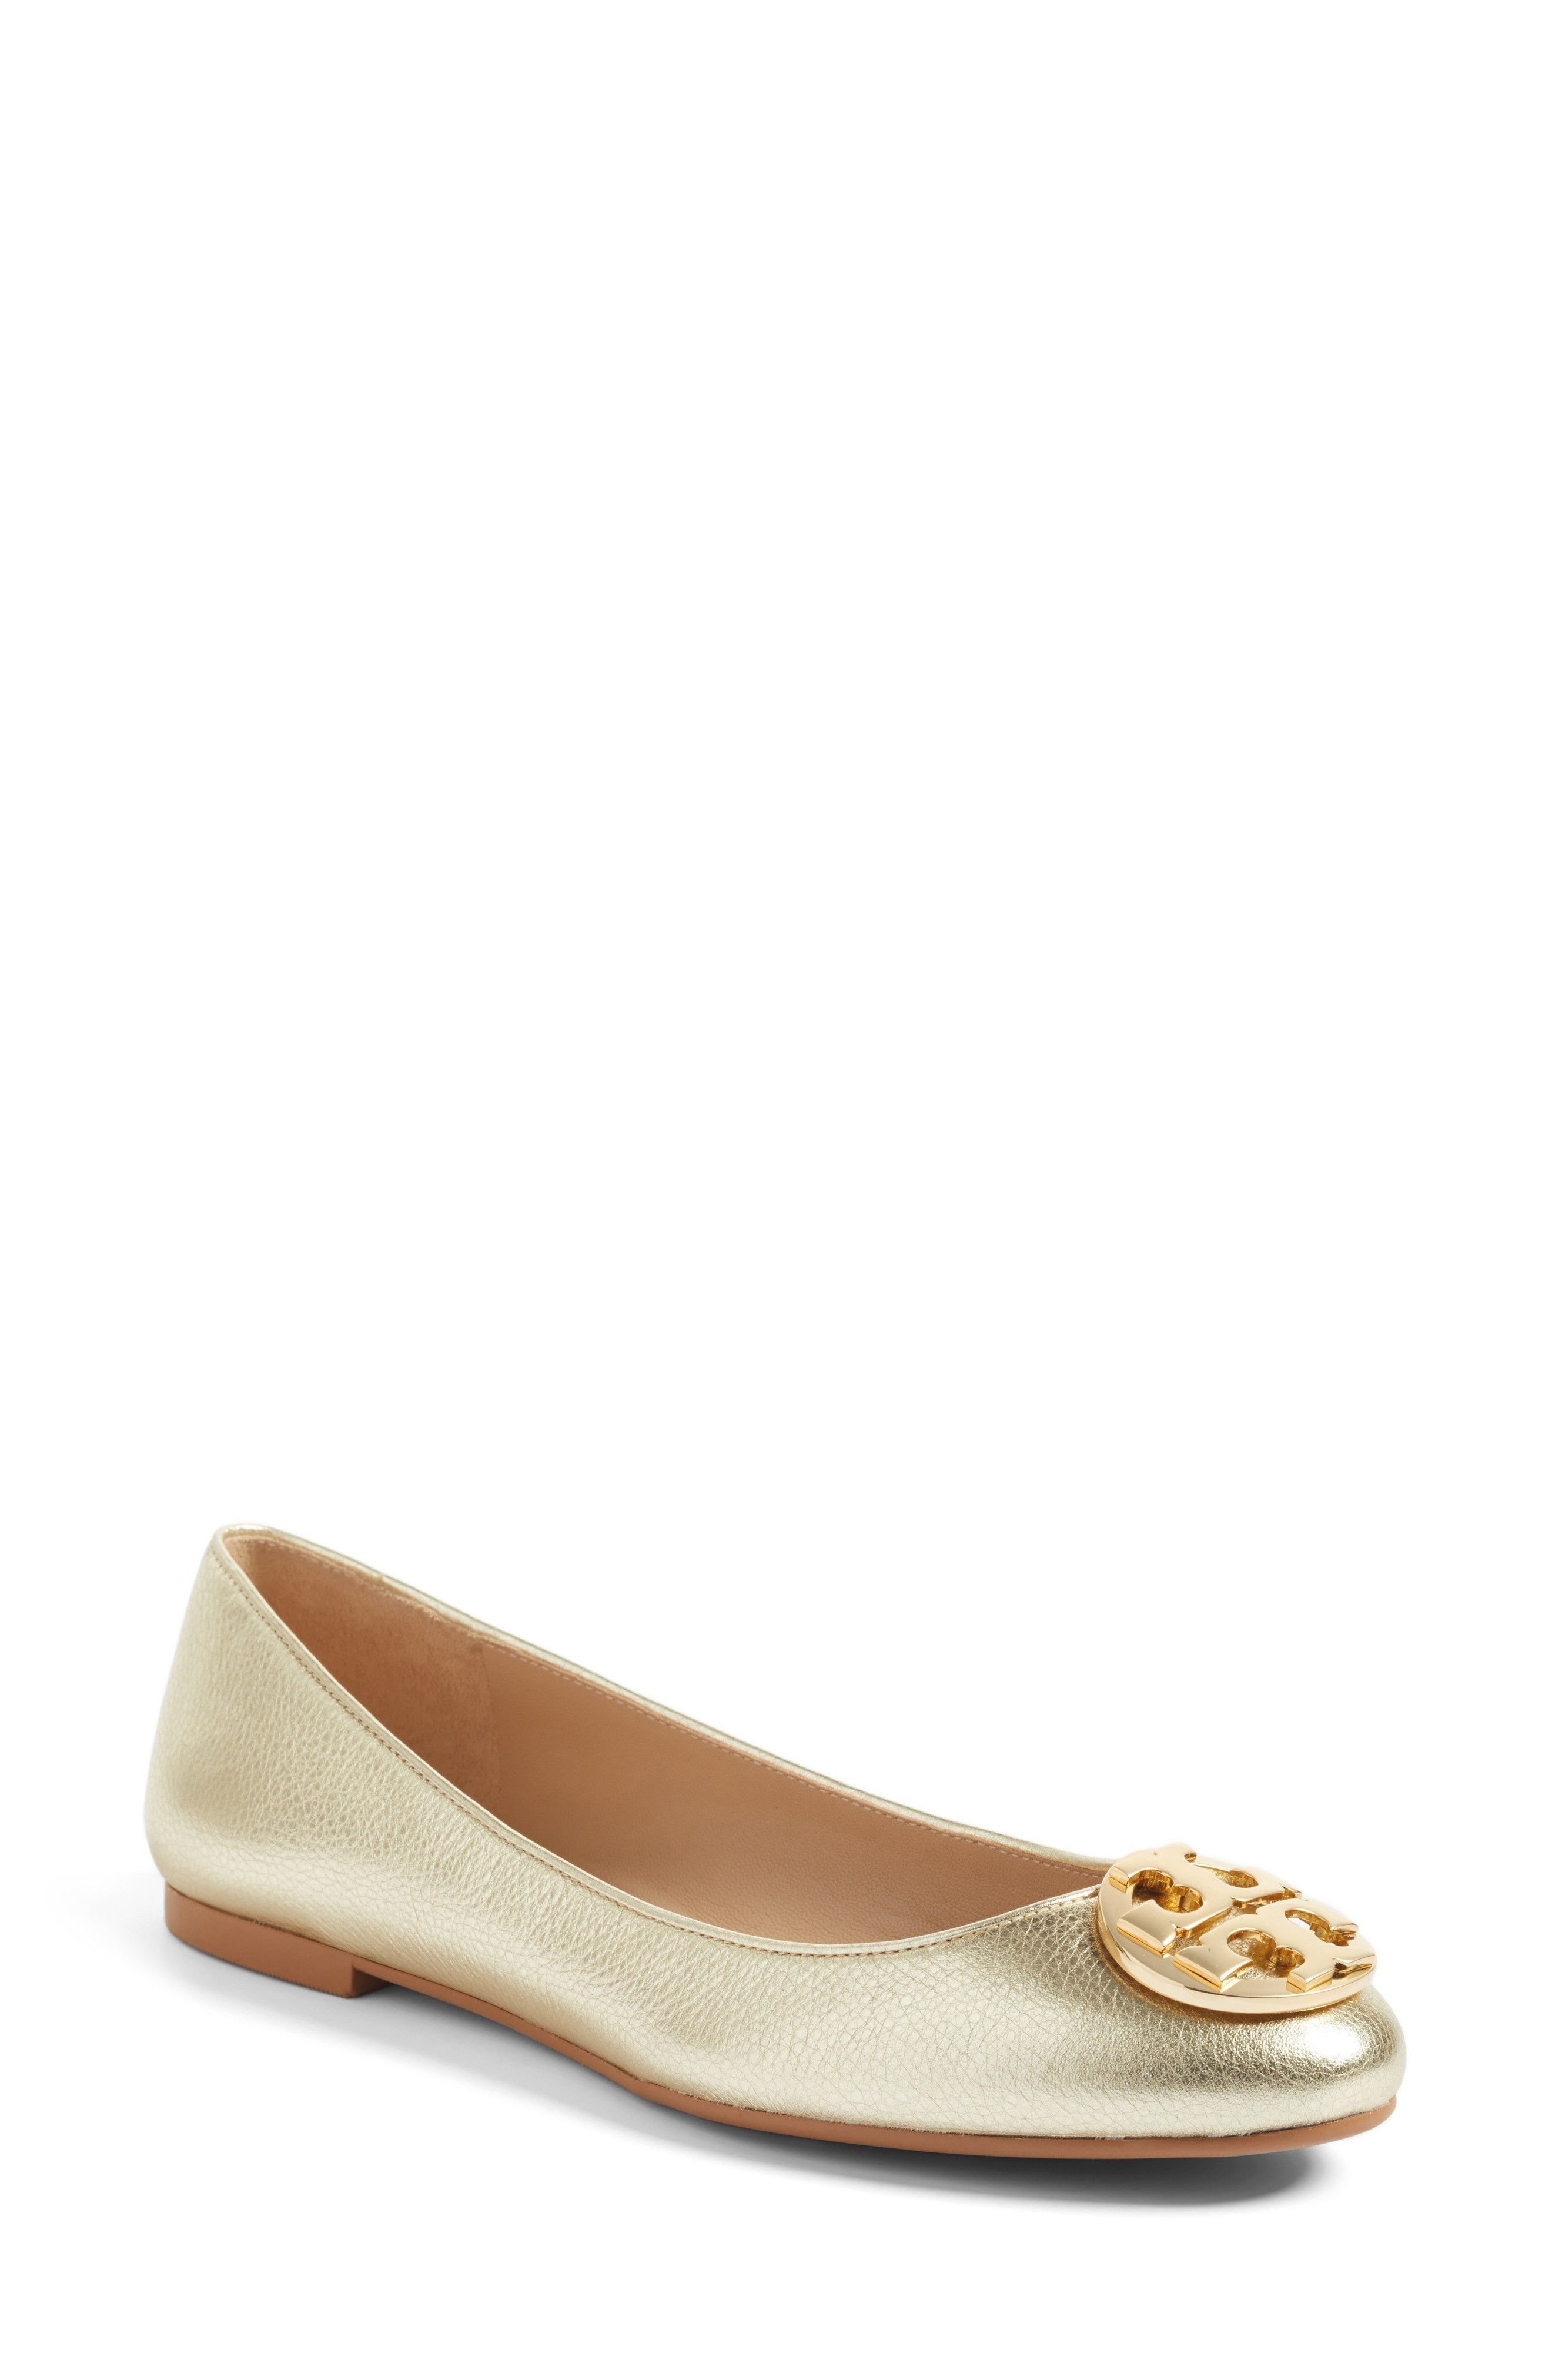 Tory Burch Tory Burch Claire Ballerina Flat (Women) available at